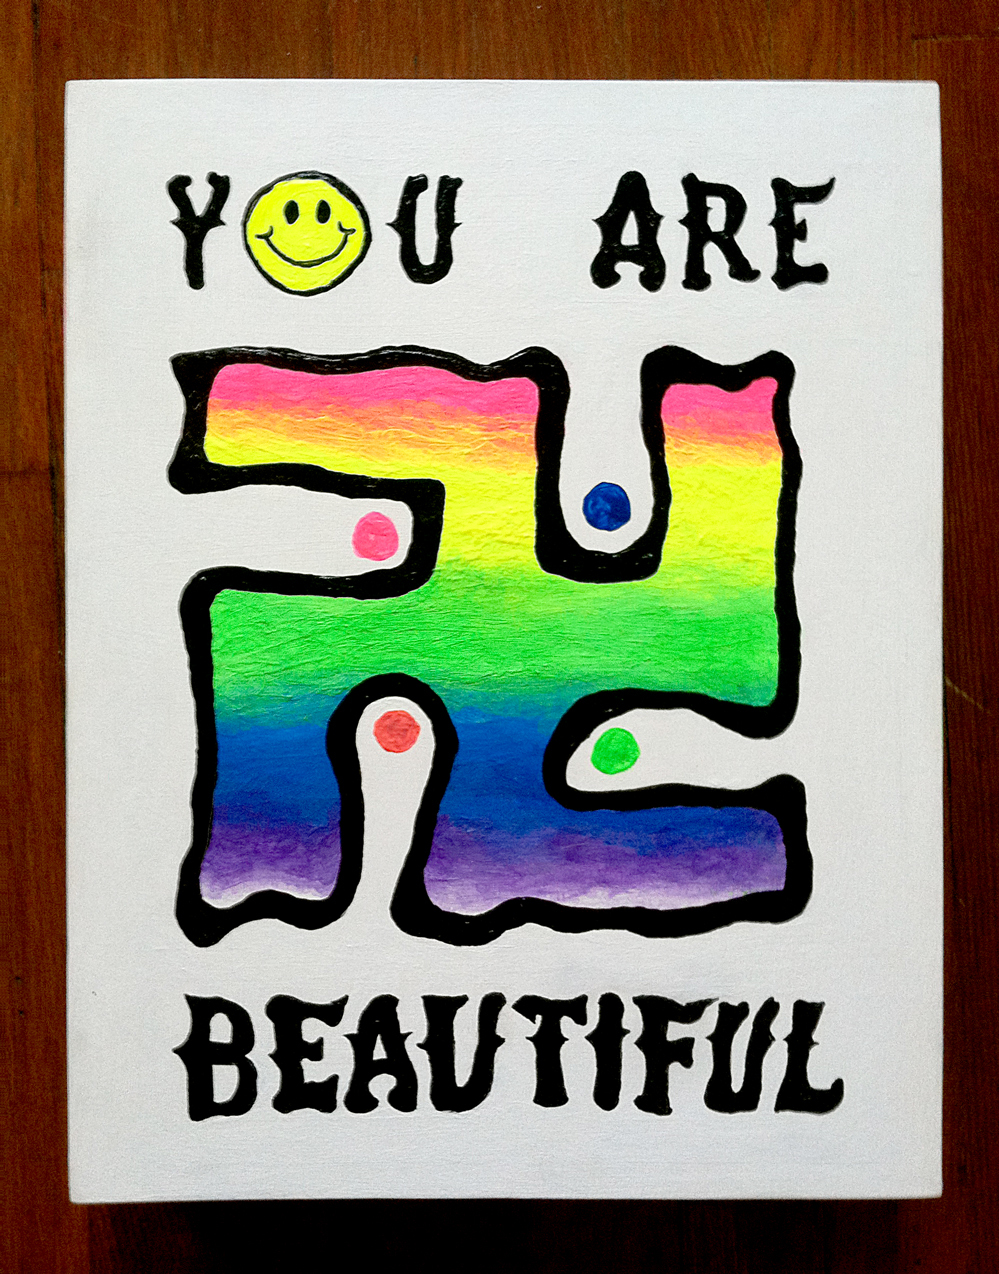 Rainbow Swastika - You Are Beautiful - painting by Sinjun